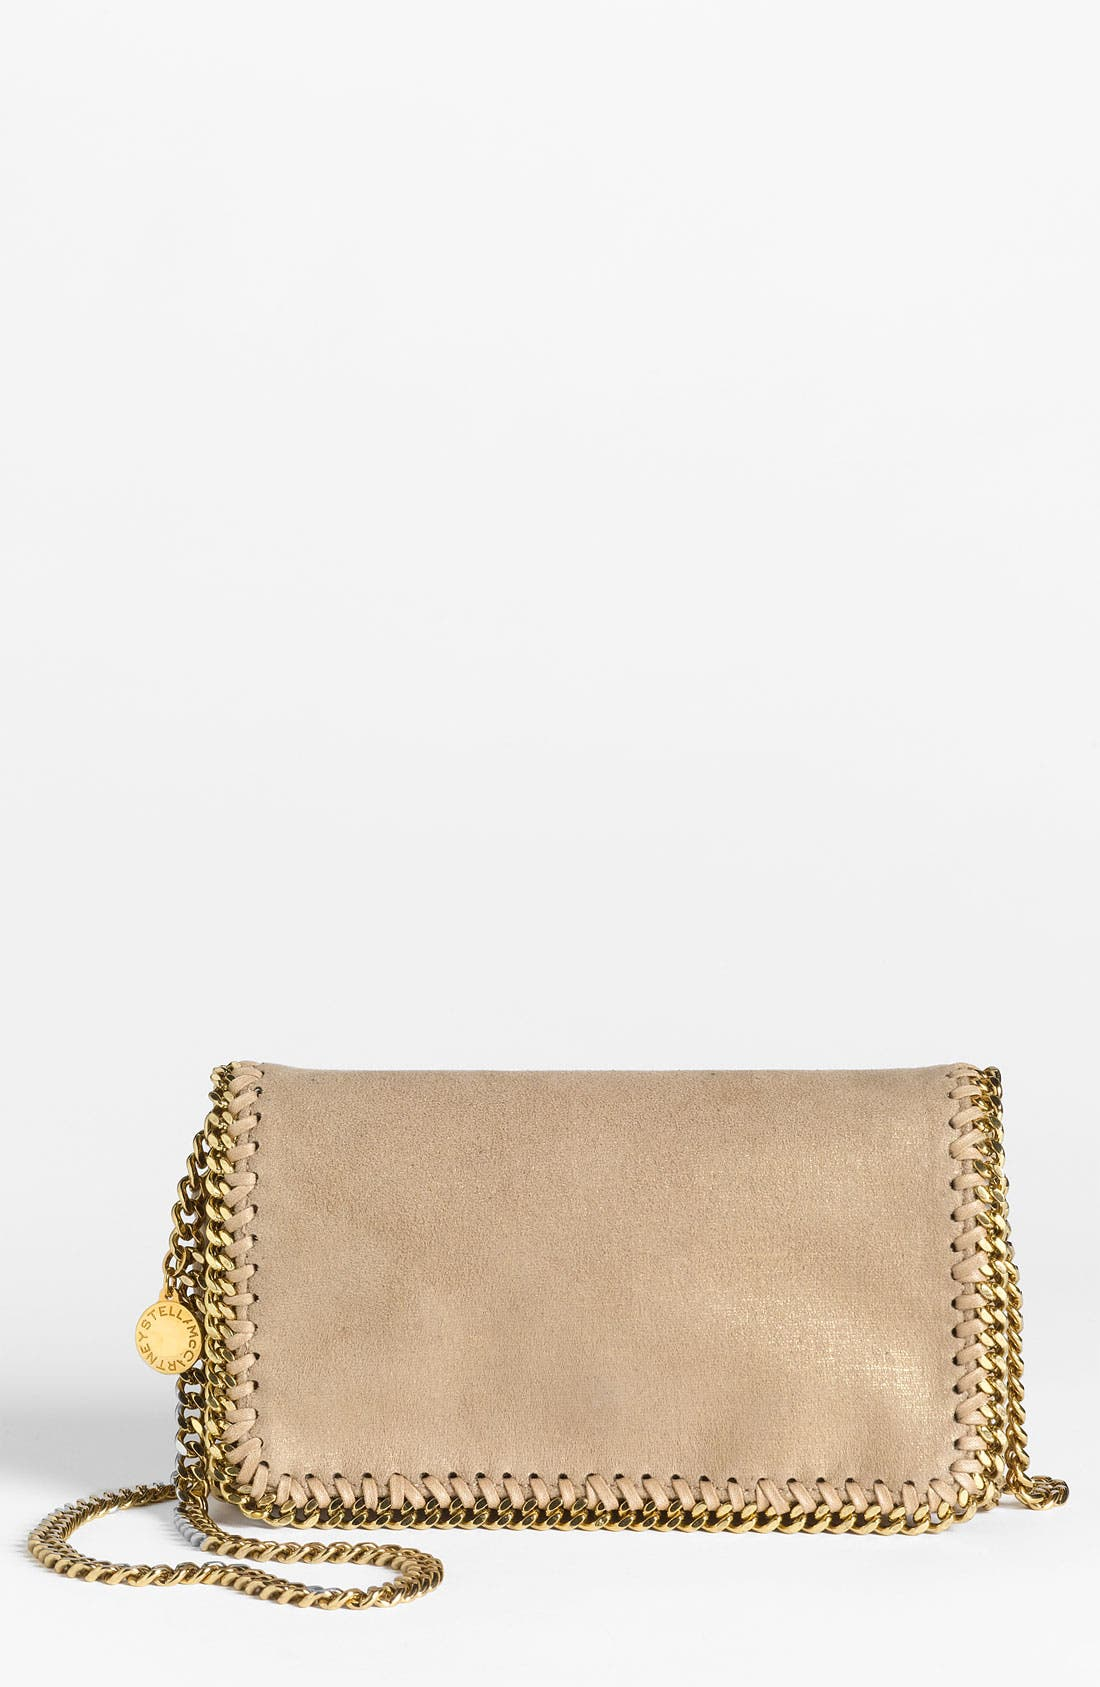 Main Image - Stella McCartney 'Falabella' Faux Suede Crossbody Bag